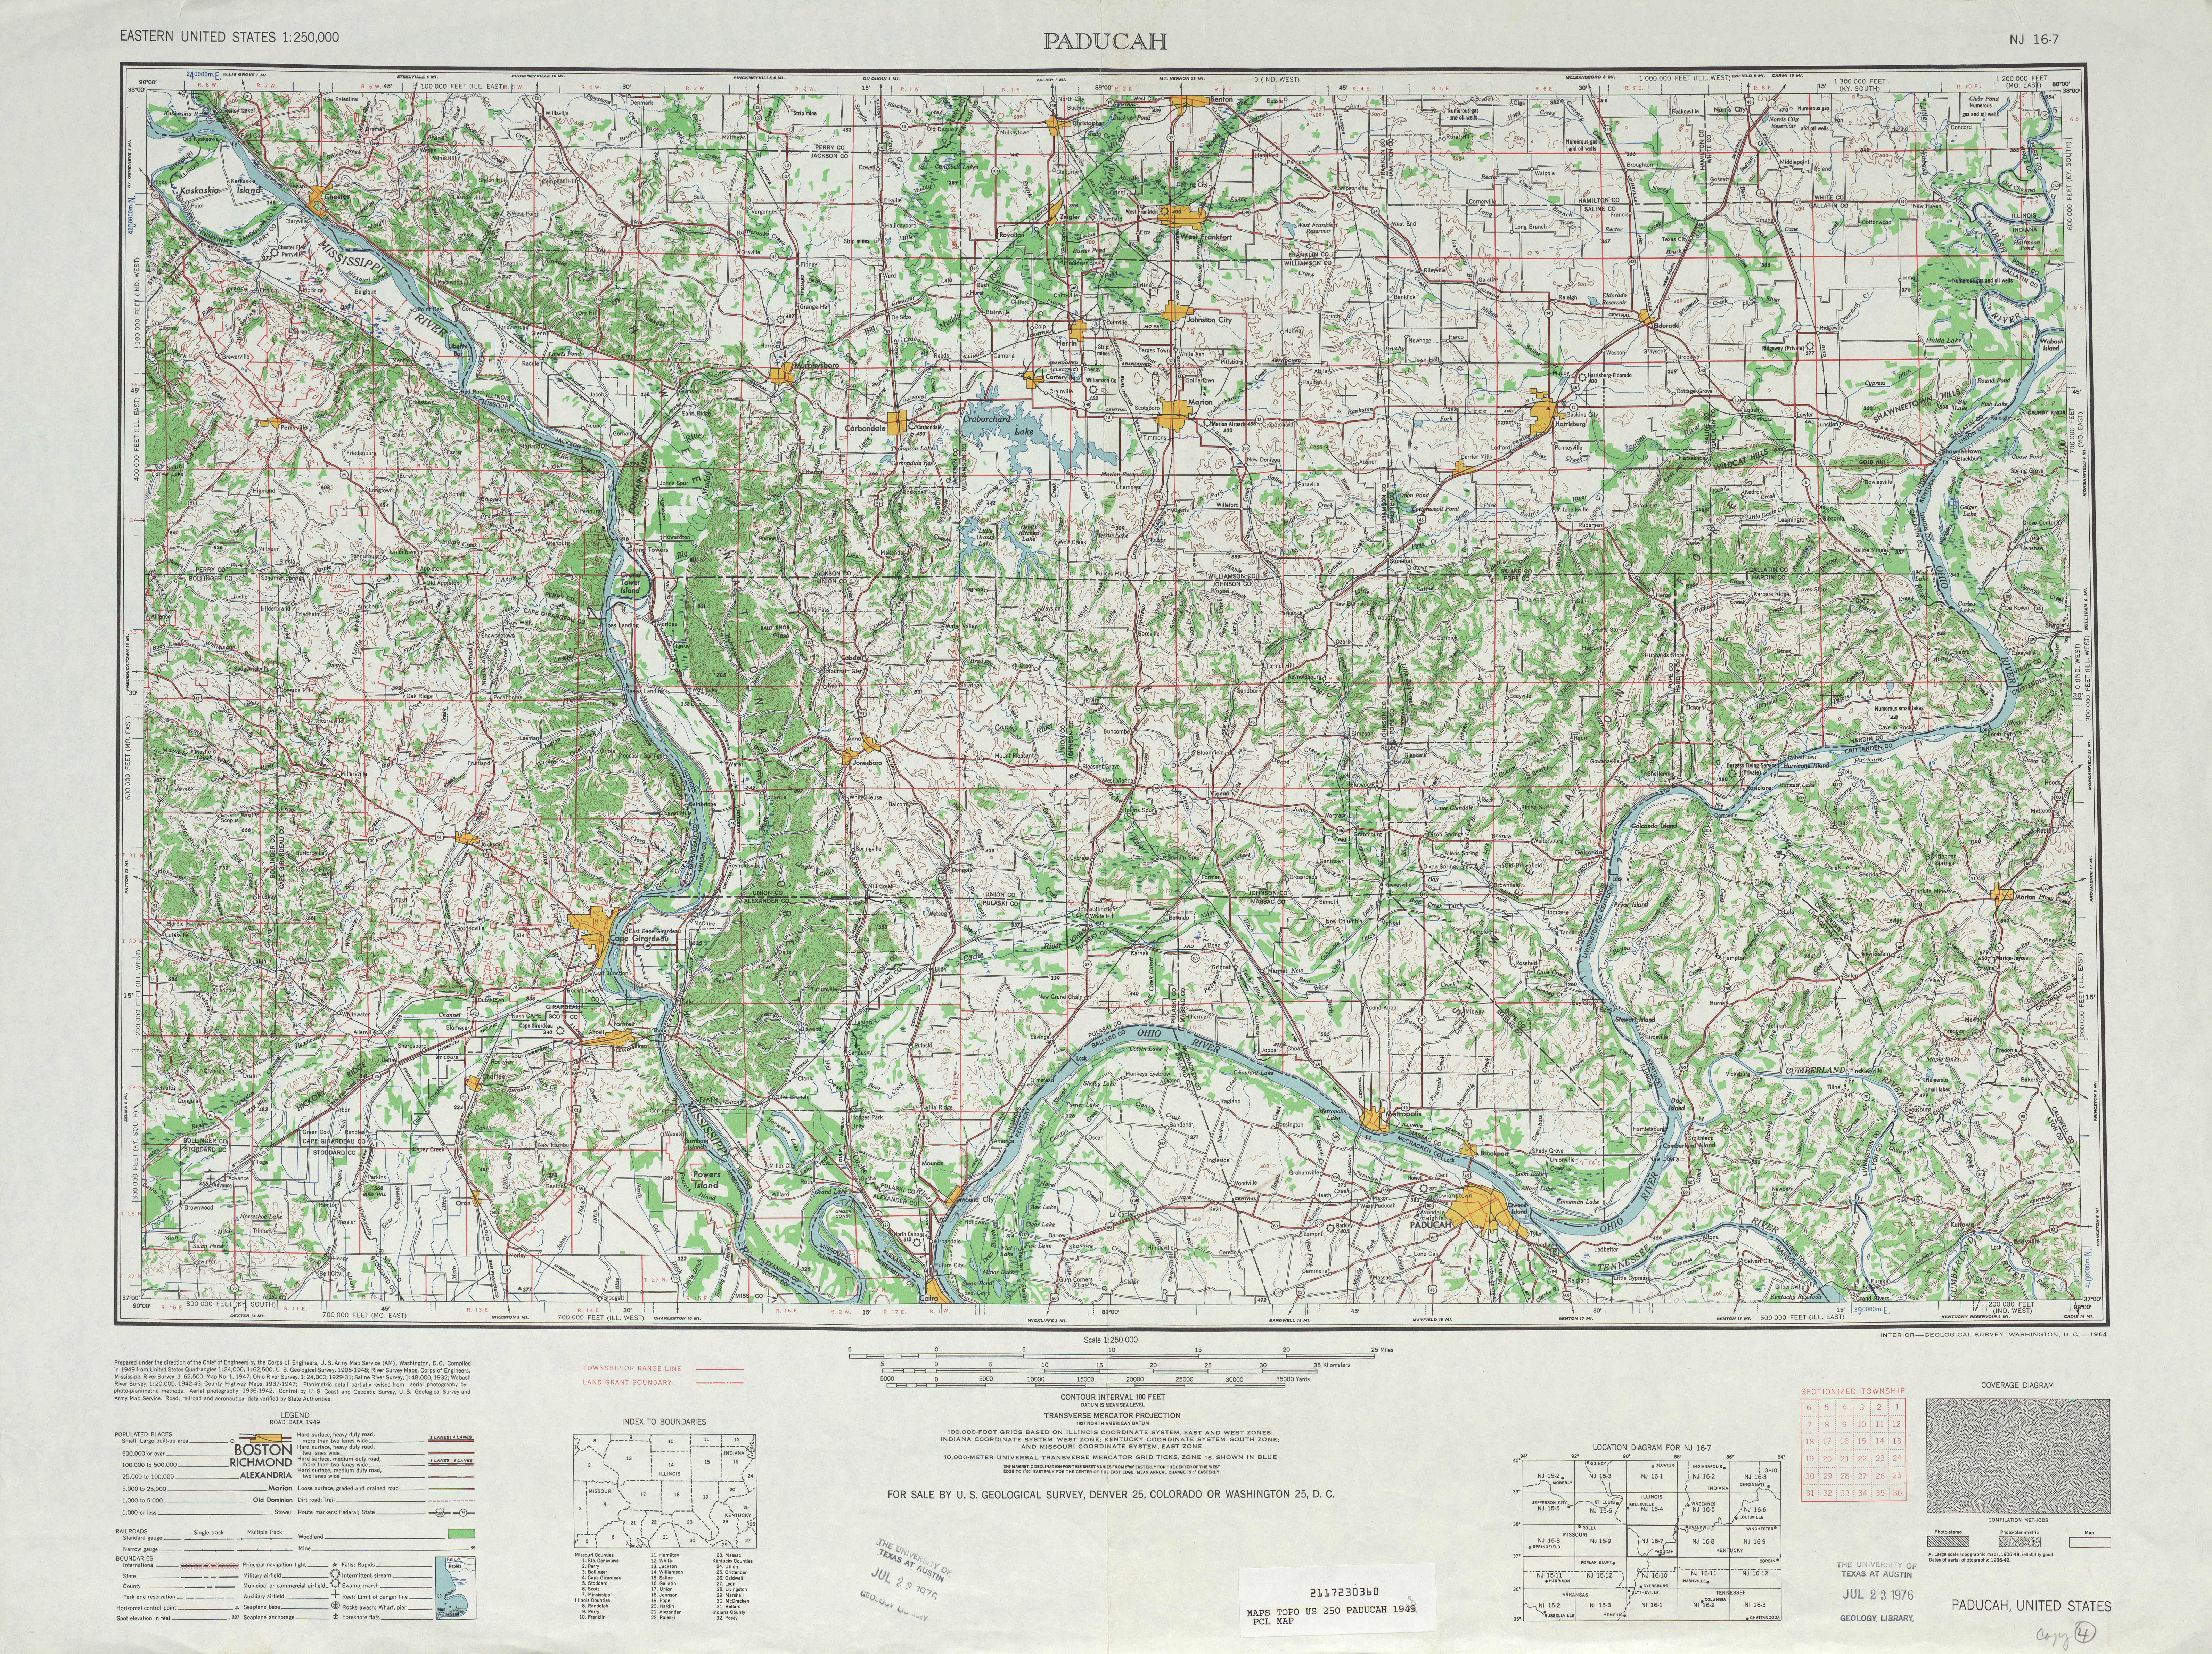 Paducah Topographic Map Sheet, United States 1948